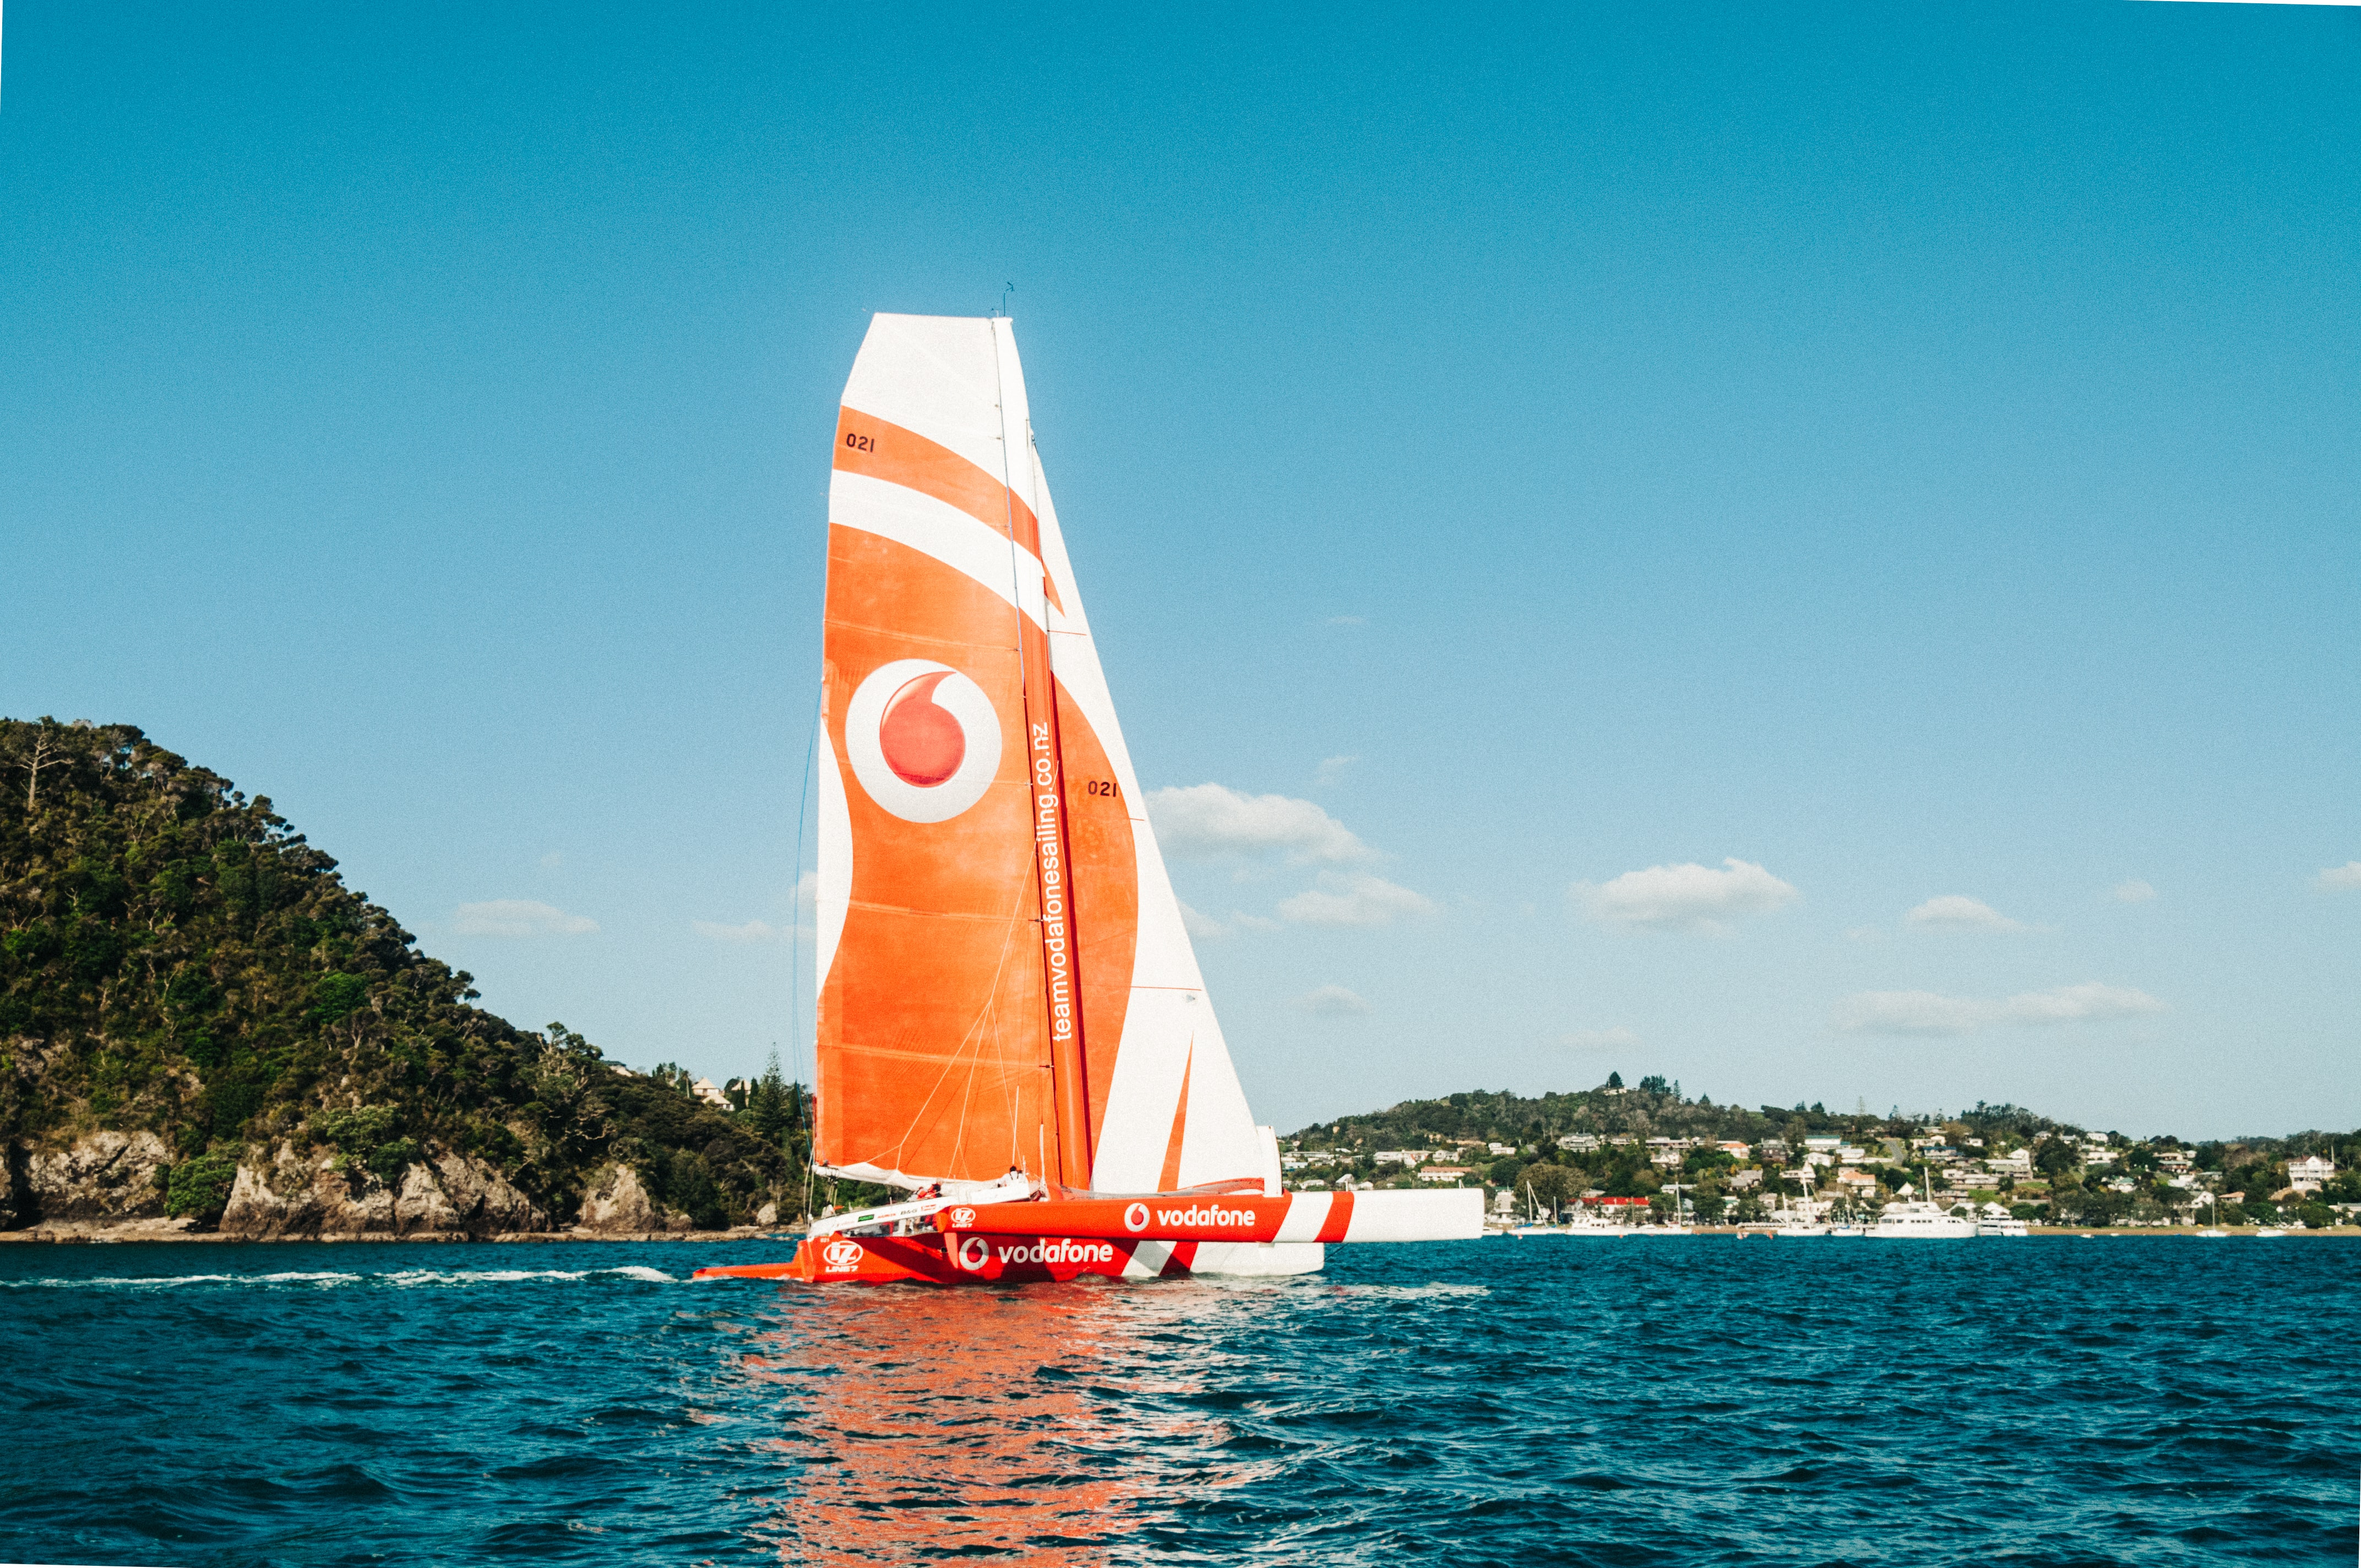 Vodafone targets 100 per cent renewables-powered mobile network in 2021